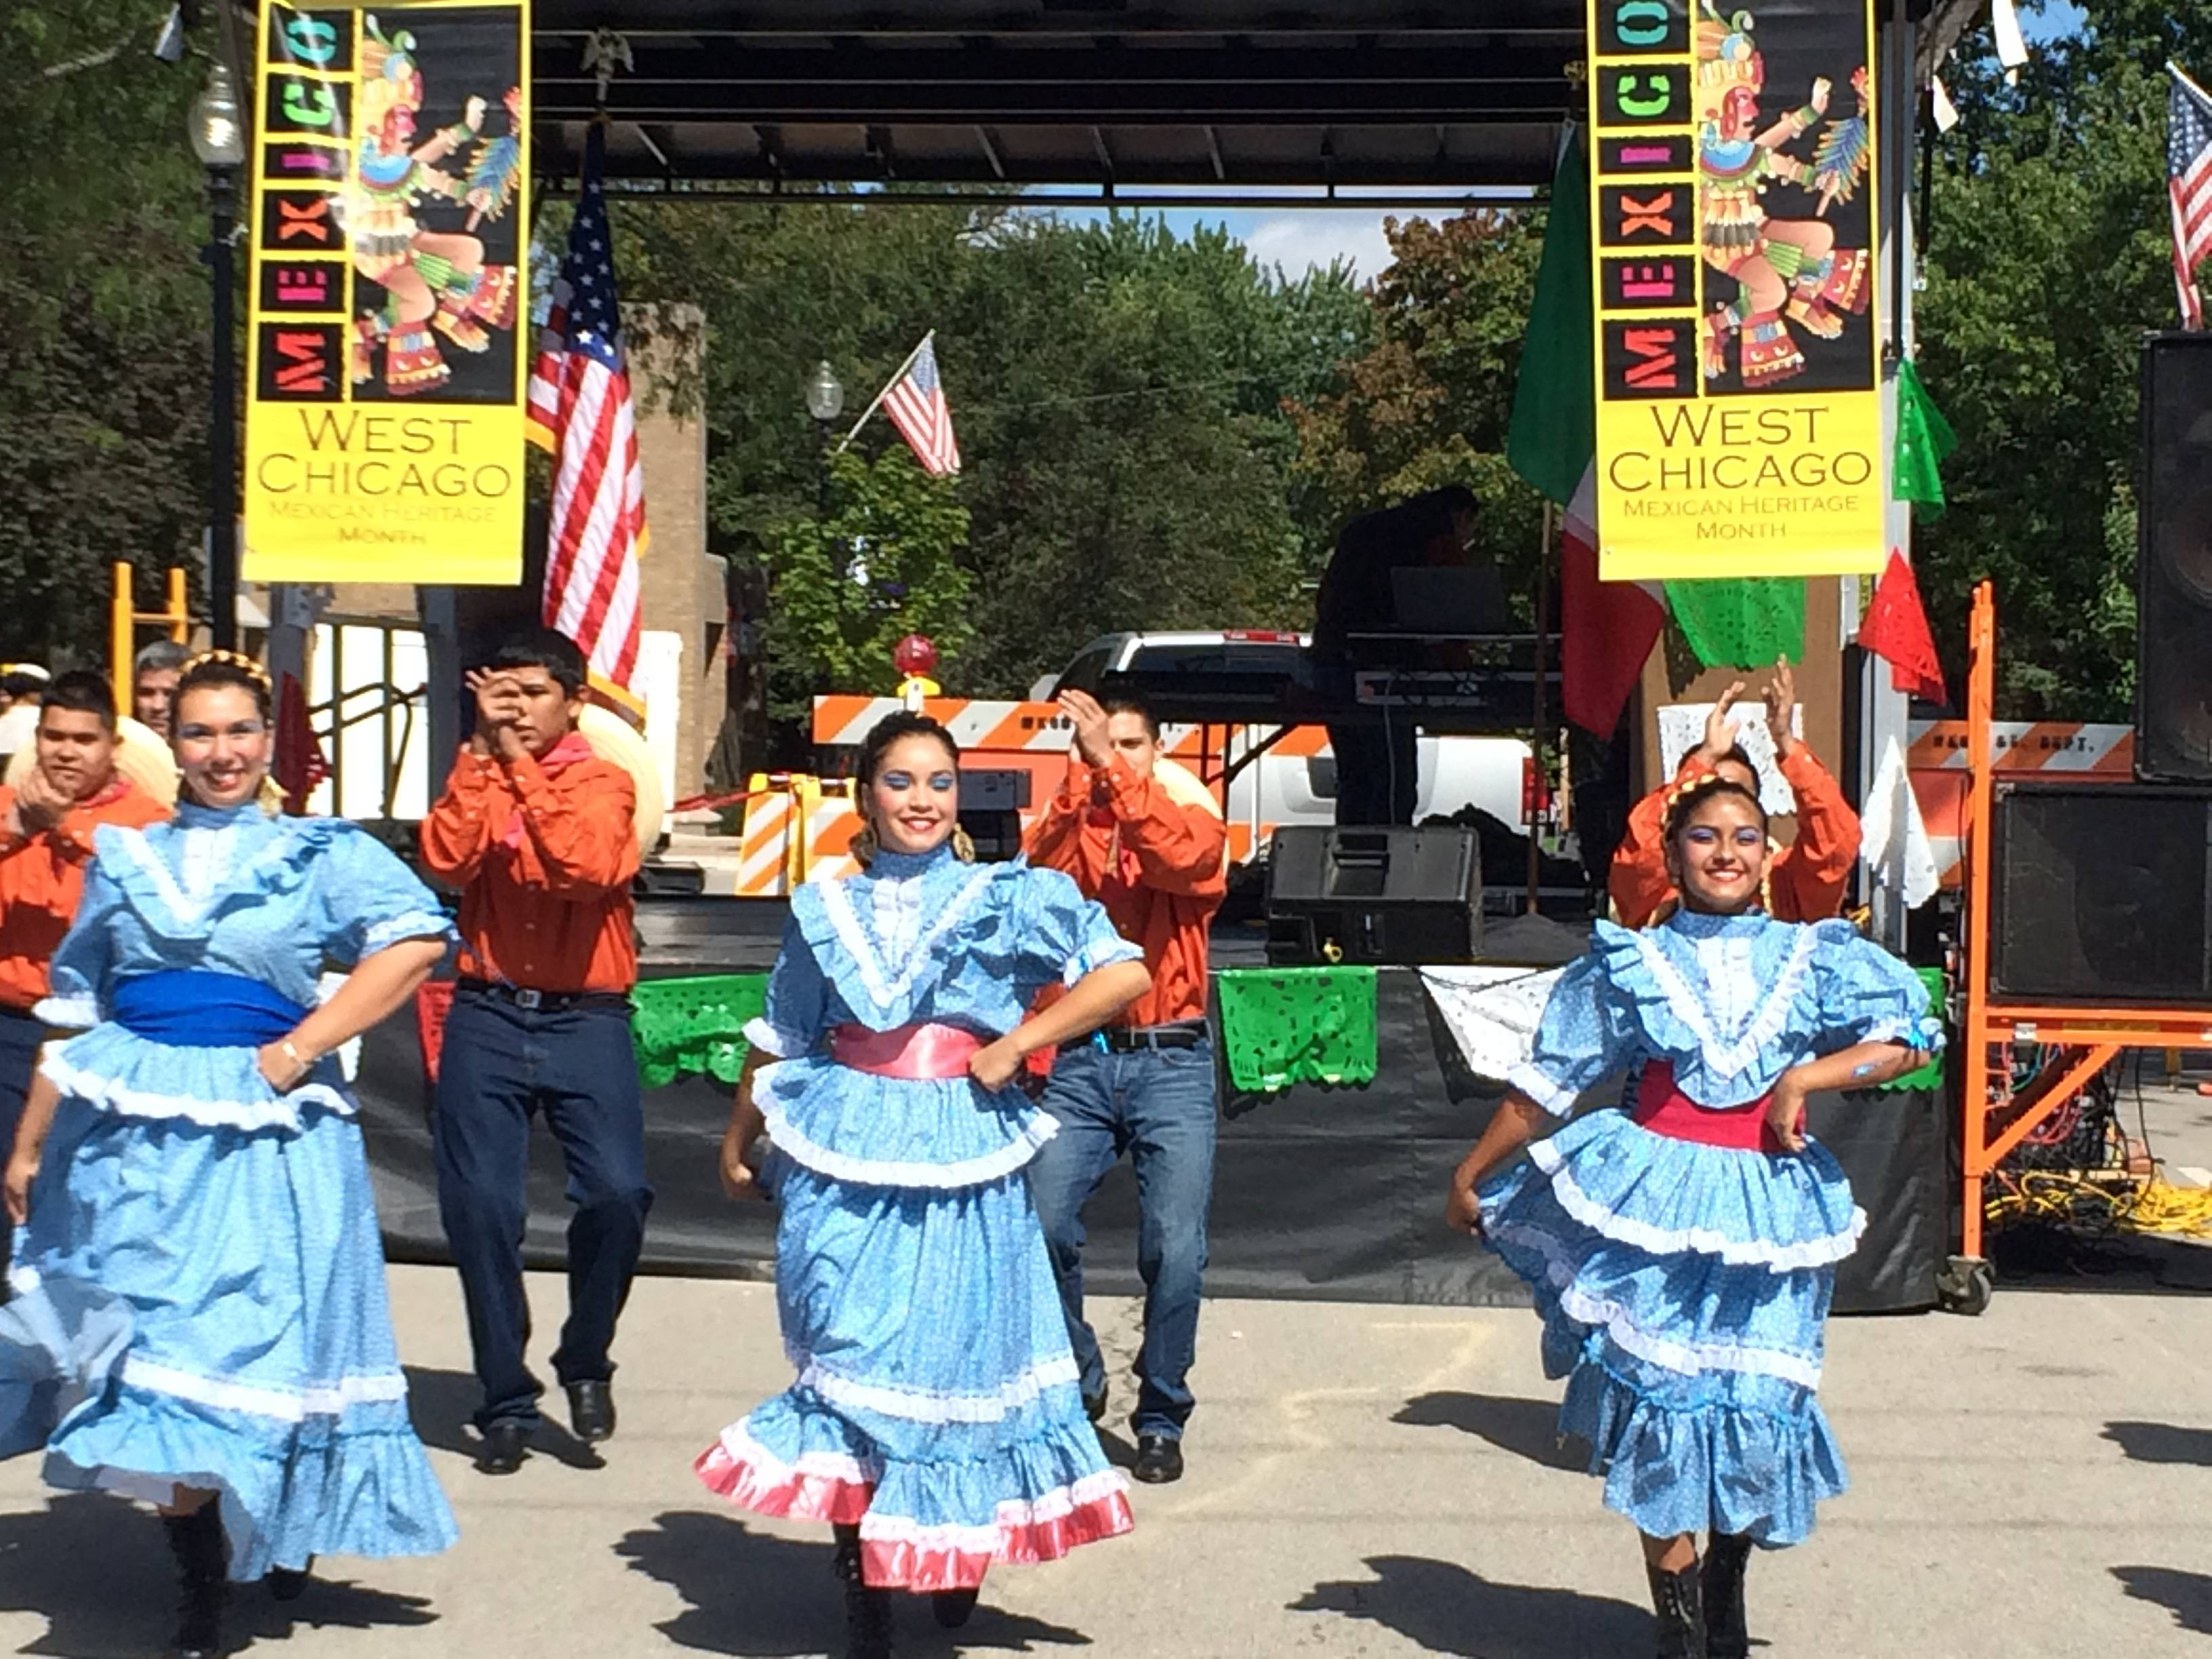 Mexican folklore dance troupe Ballet Folklrico Quetzalcoatl performs Saturday at West Chicago's Mexican Independence day parade and celebration.